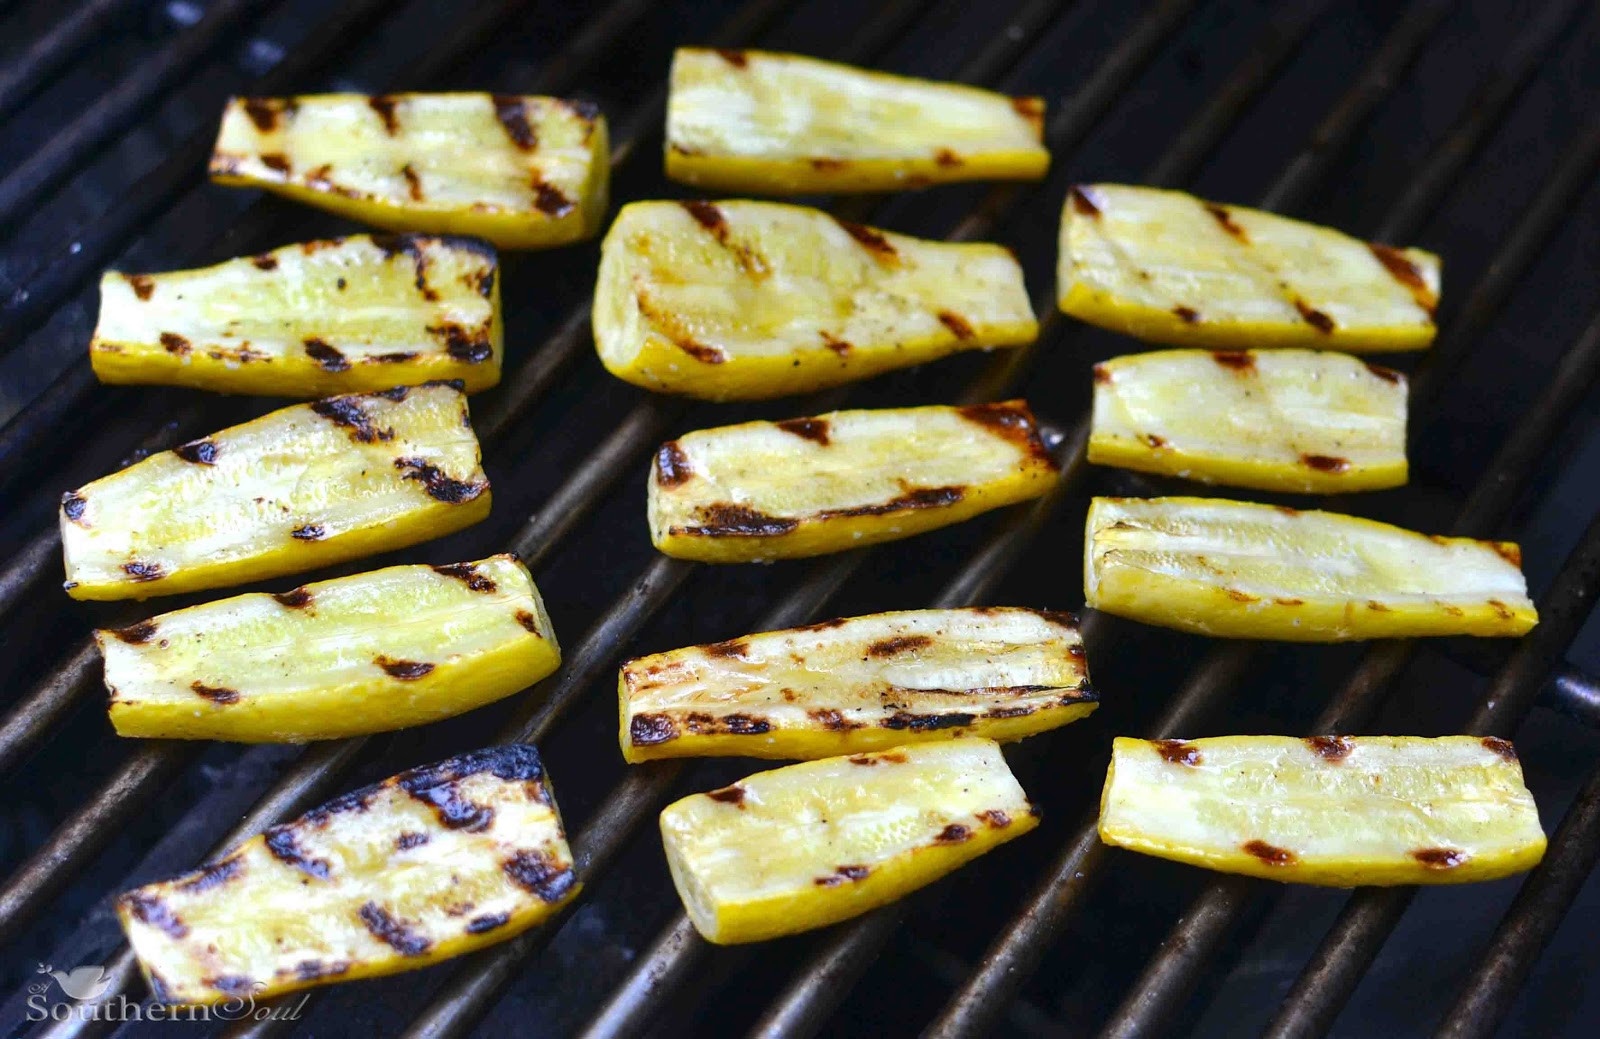 How To Grill Squash  Grilled Yellow Squash with Lemon & Chive Vinaigrette A